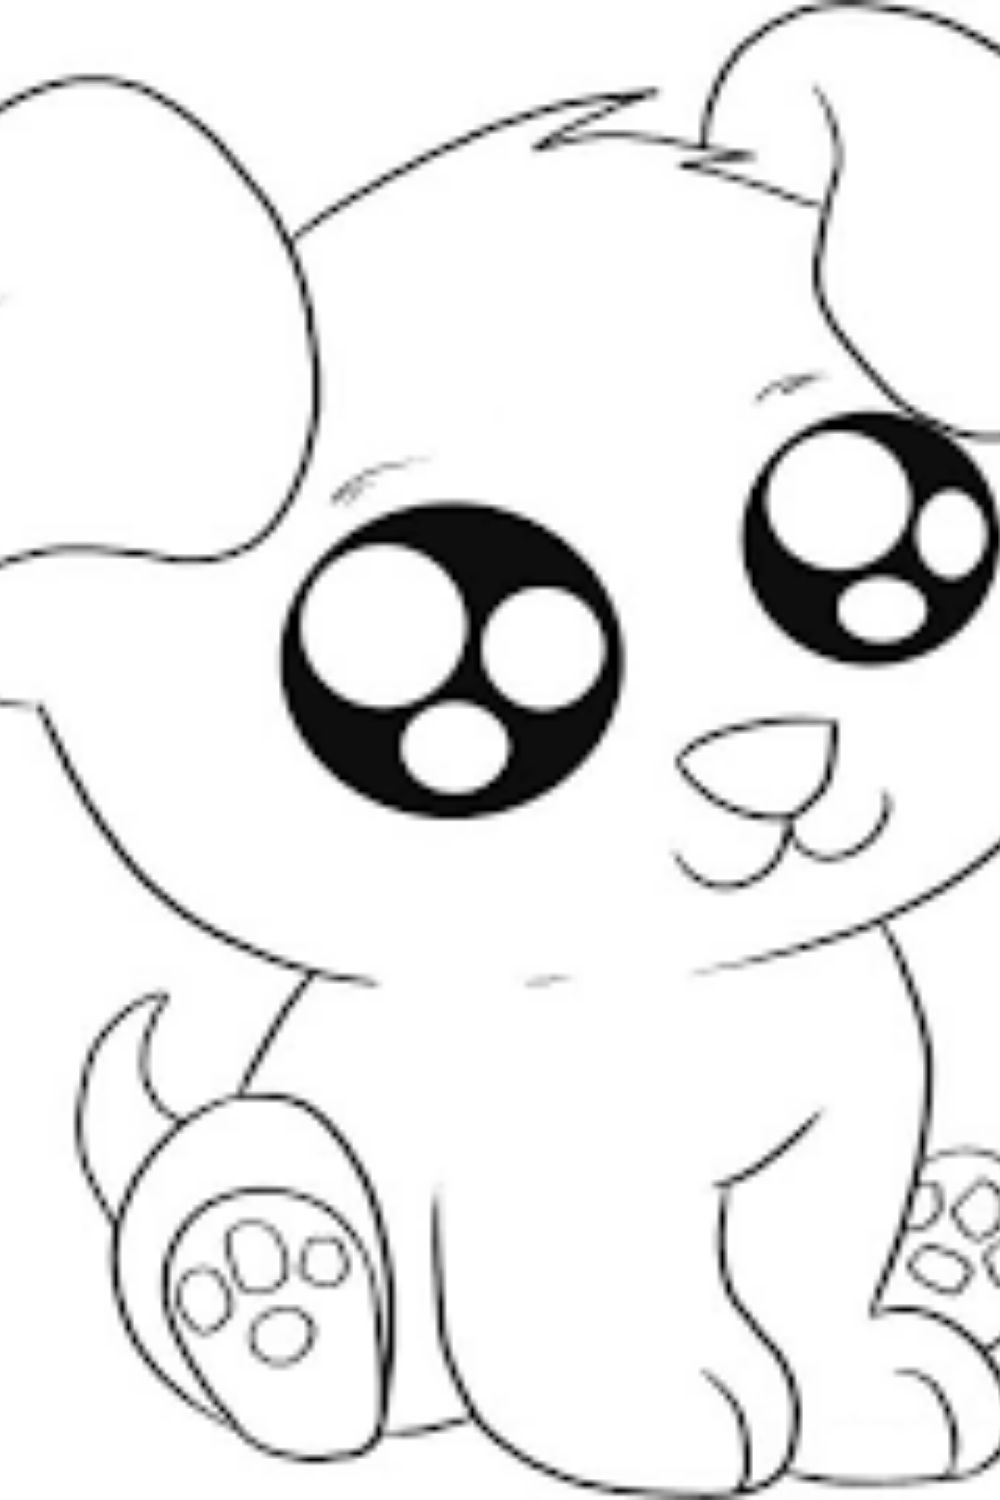 Kitten Coloring Pages Dog Coloring Pages For Adults Puppy Coloring Pages Cartoon Coloring Pages Unicorn Coloring Pages [ 1500 x 1000 Pixel ]